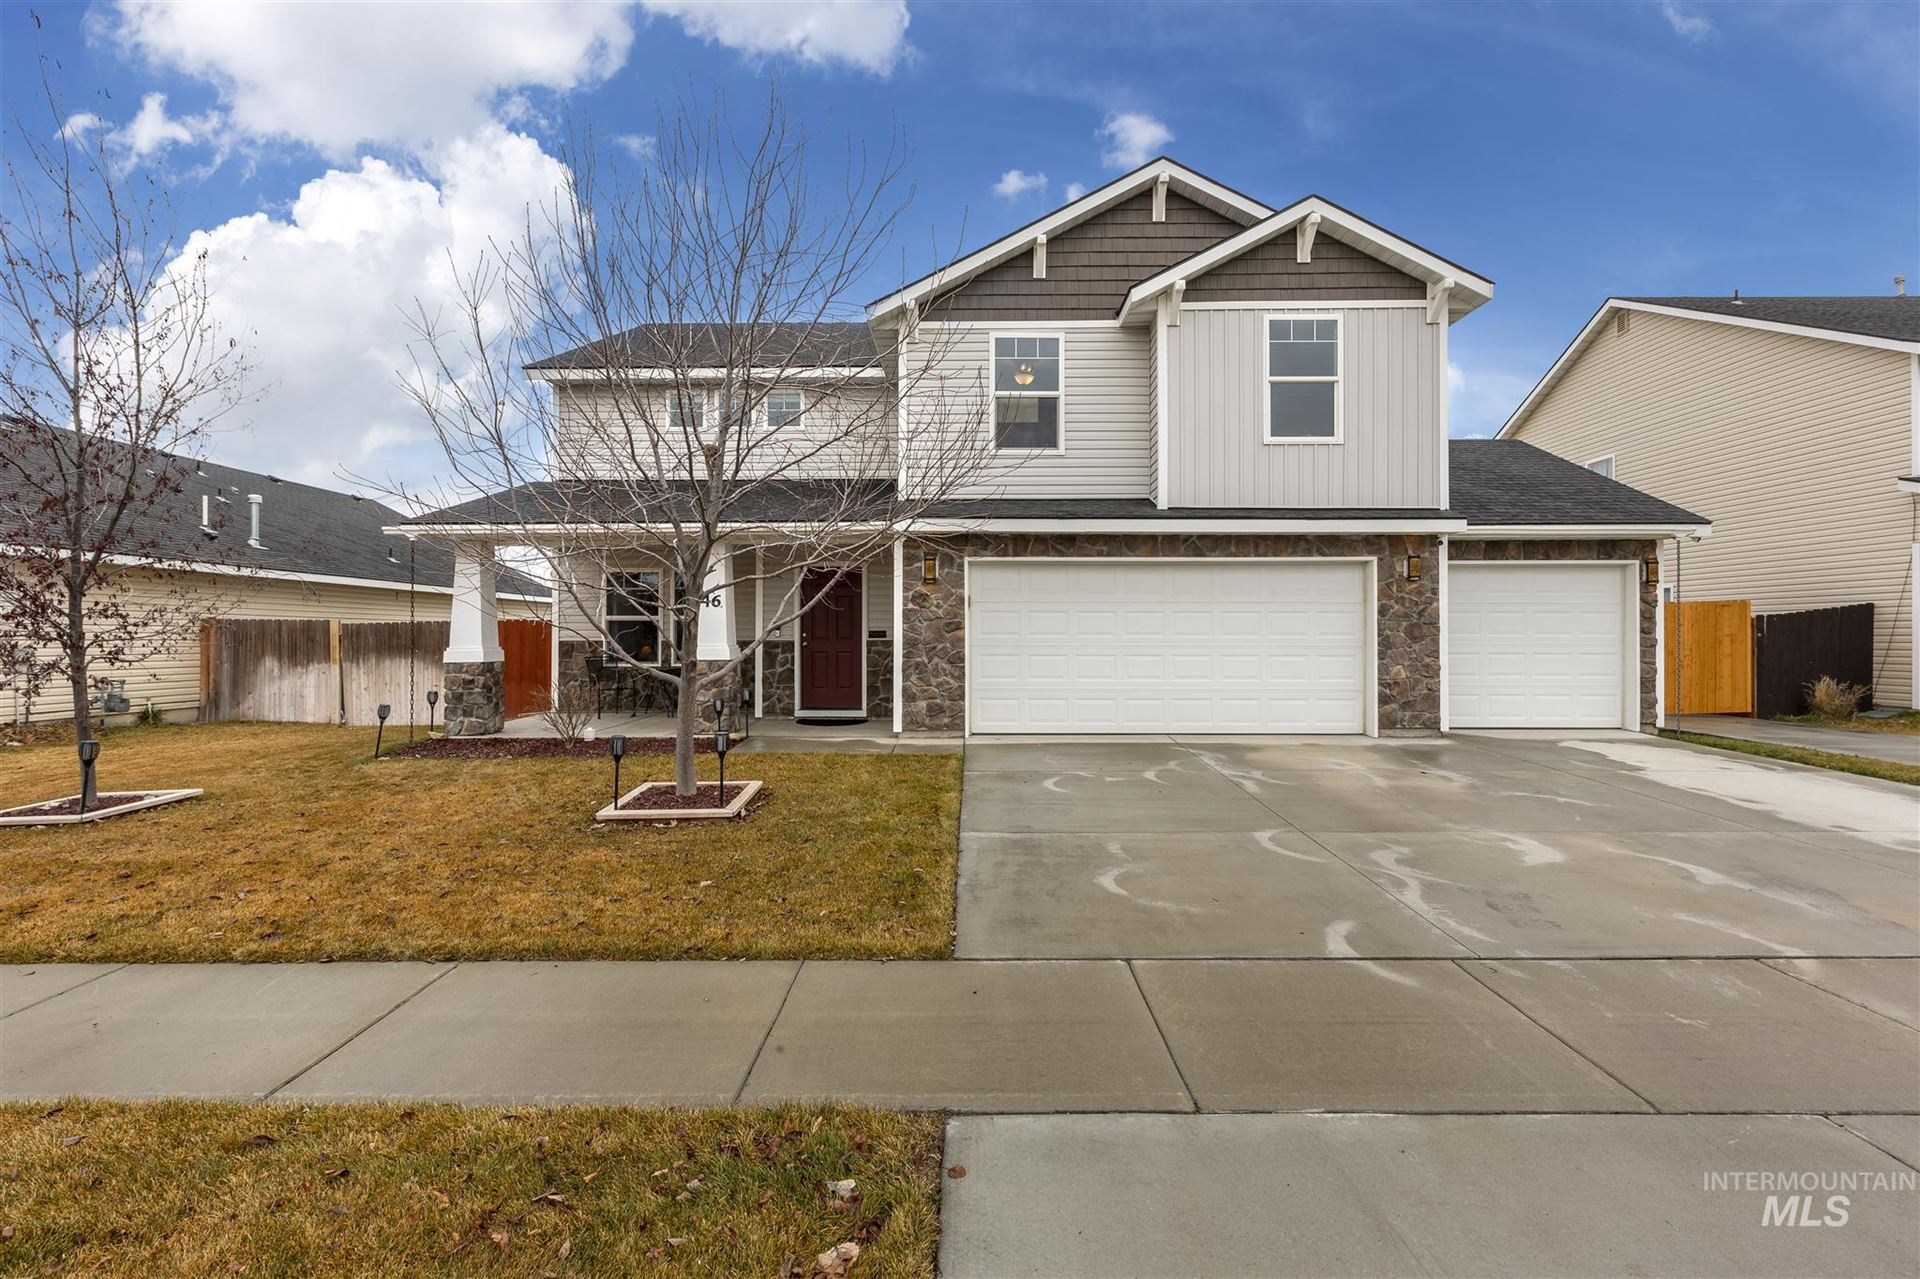 Photo of 46 Zion Park Dr, Nampa, ID 83651 (MLS # 98791674)